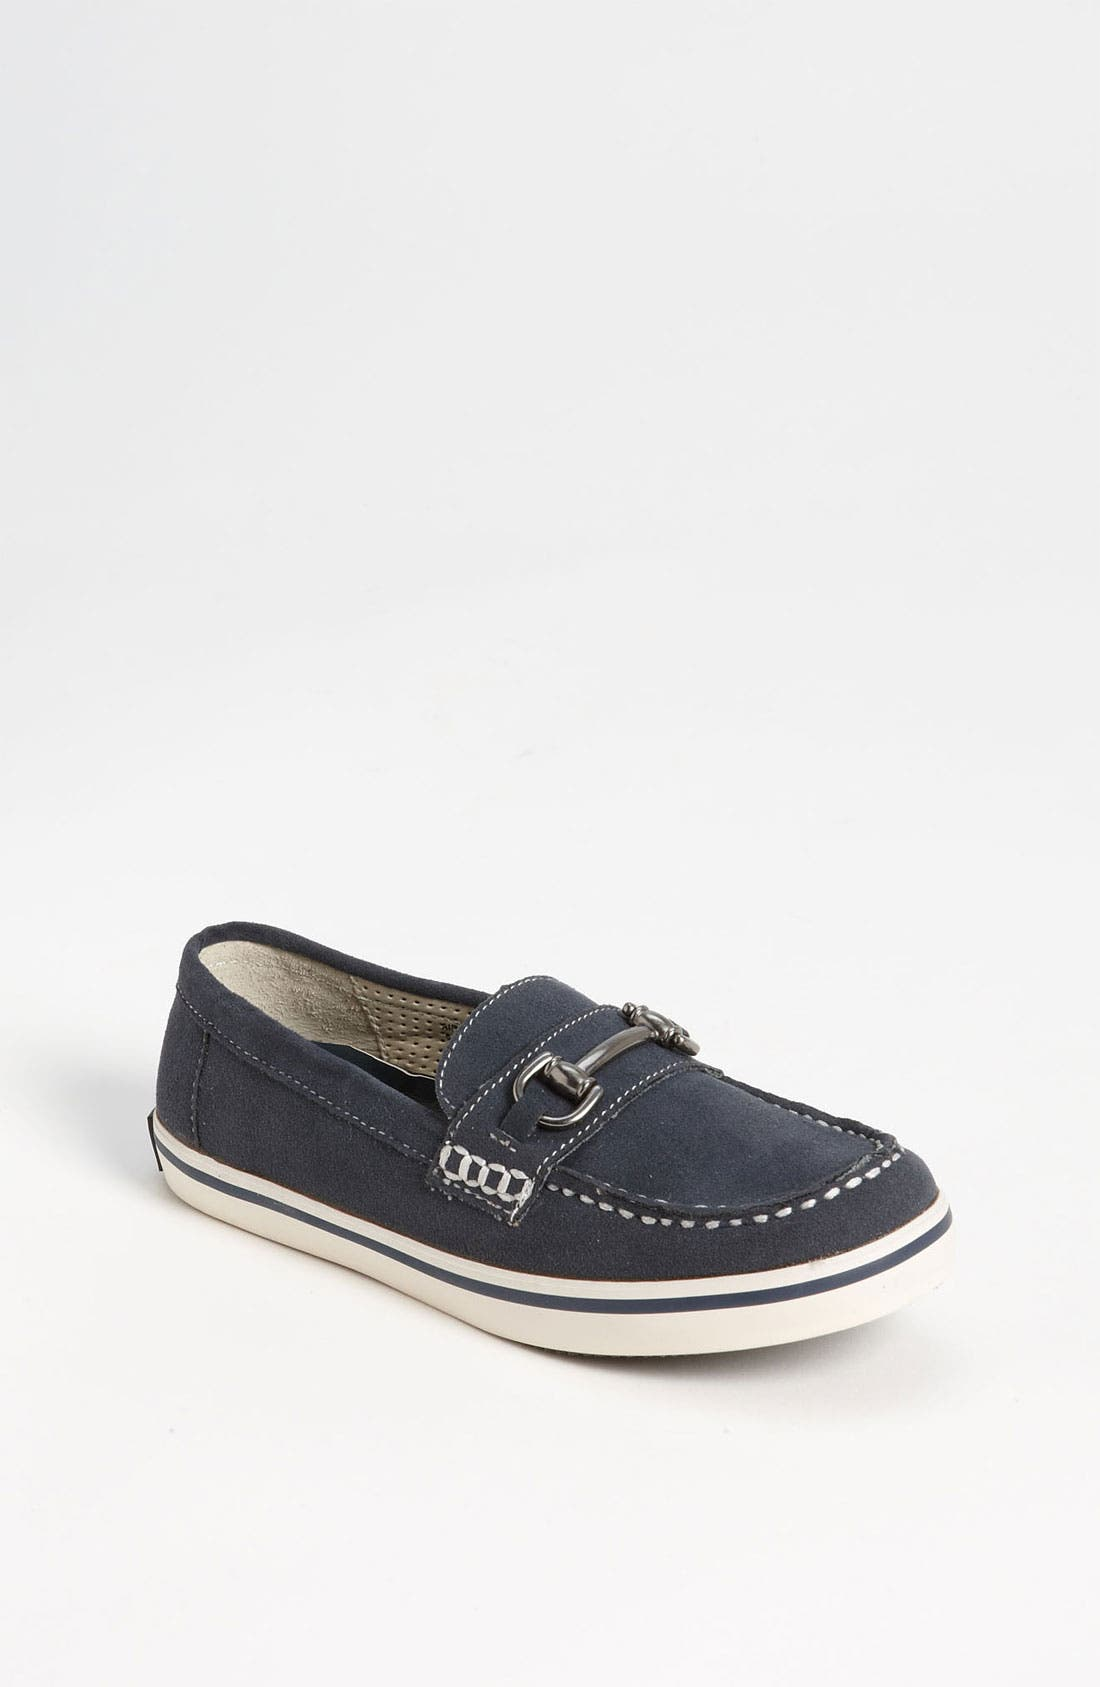 Main Image - Cole Haan 'Air Cory' Slip-On (Toddler, Little Kid & Big Kid)